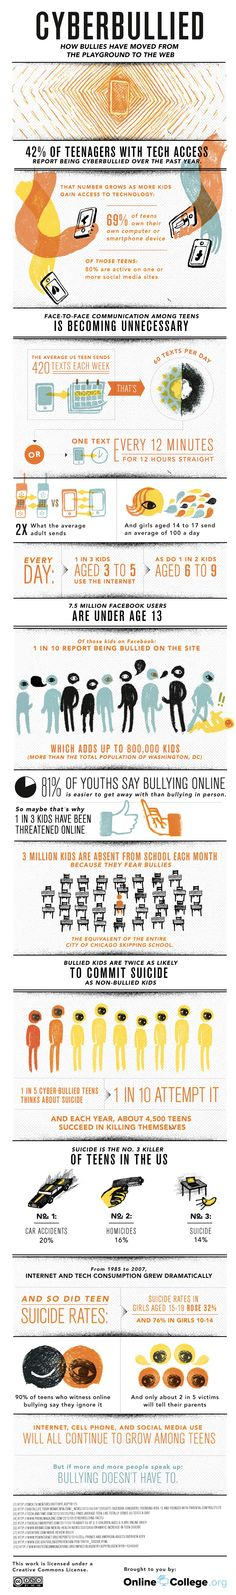 http://www.bitrebels.com/social/cyberbullying-dont-let-bullies-ruin-your-online-life-infographic/#    Bullying-On-The-Internet-Infographic